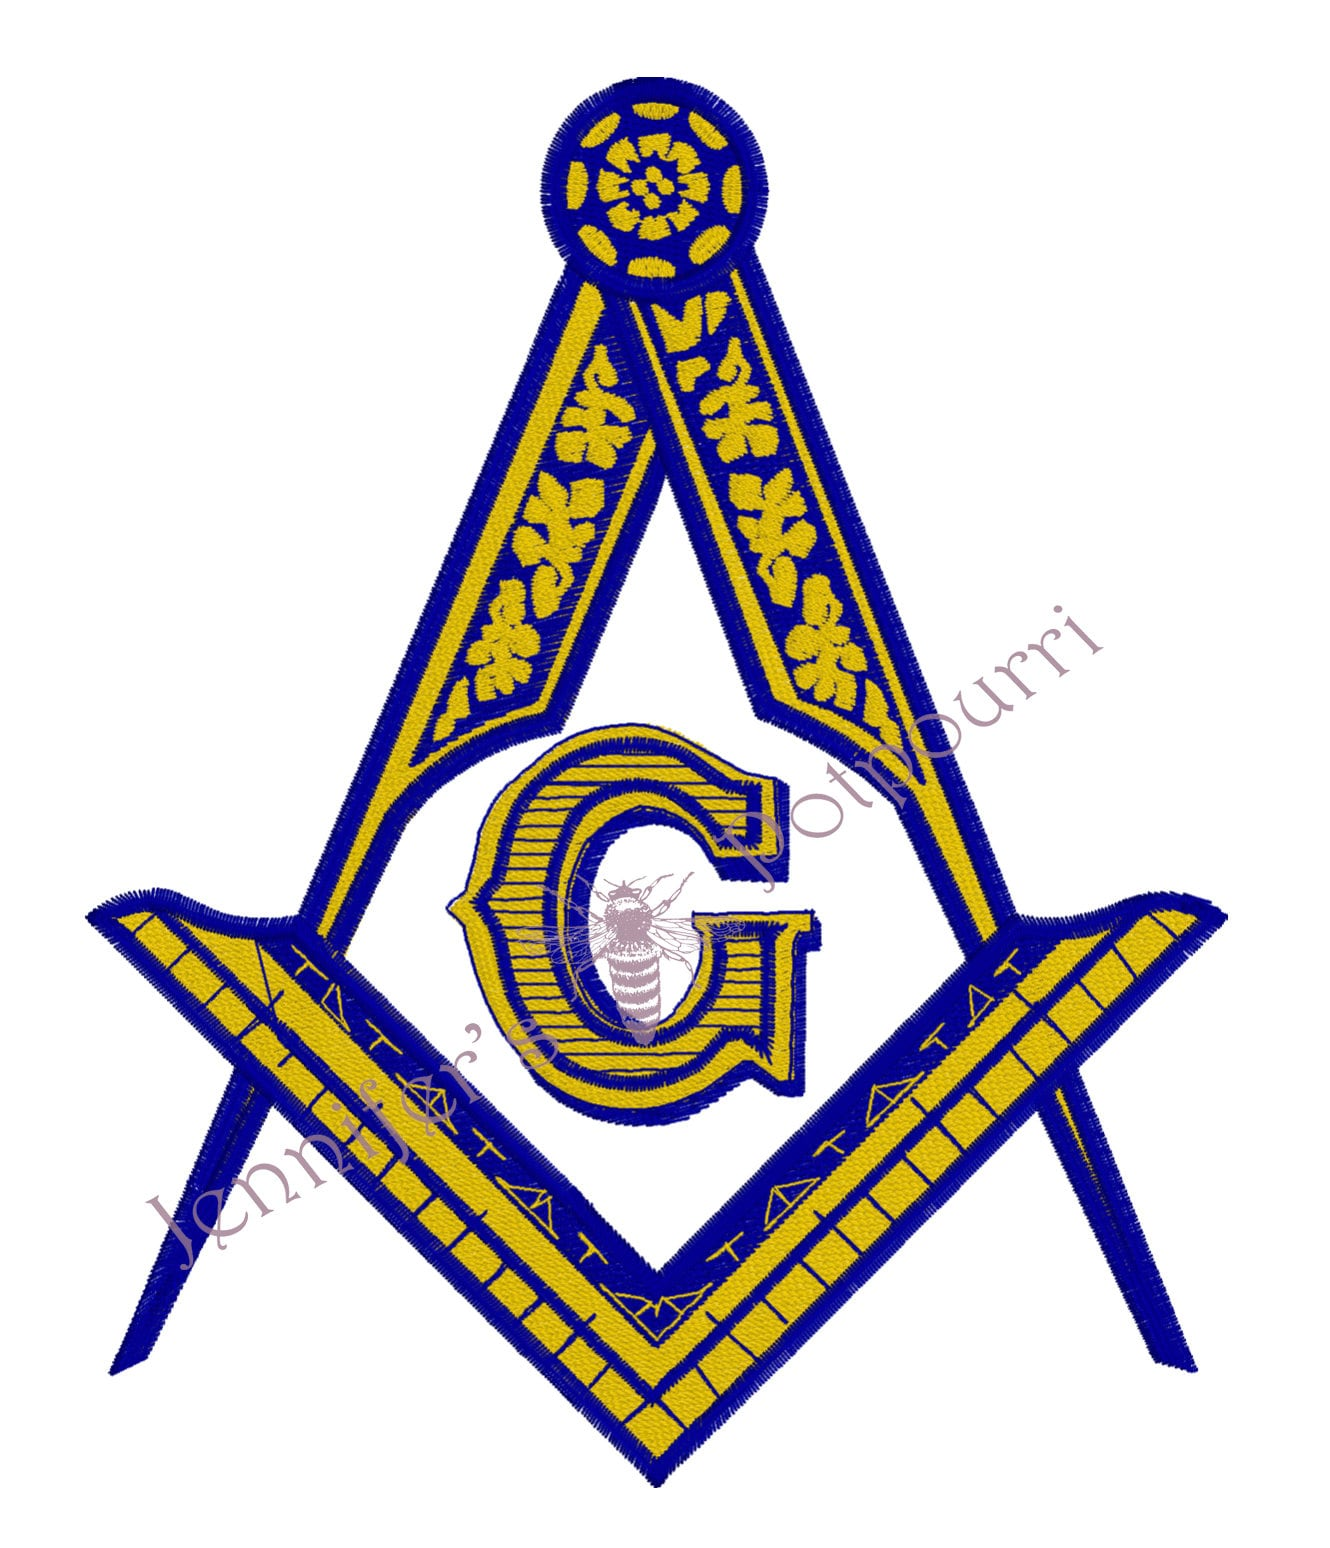 Embroidery Design Digital File and 14x14 6x6 Effulgent Square and Compasses 10x10 8x8 Ancient Free and Accepted Masons 12x12